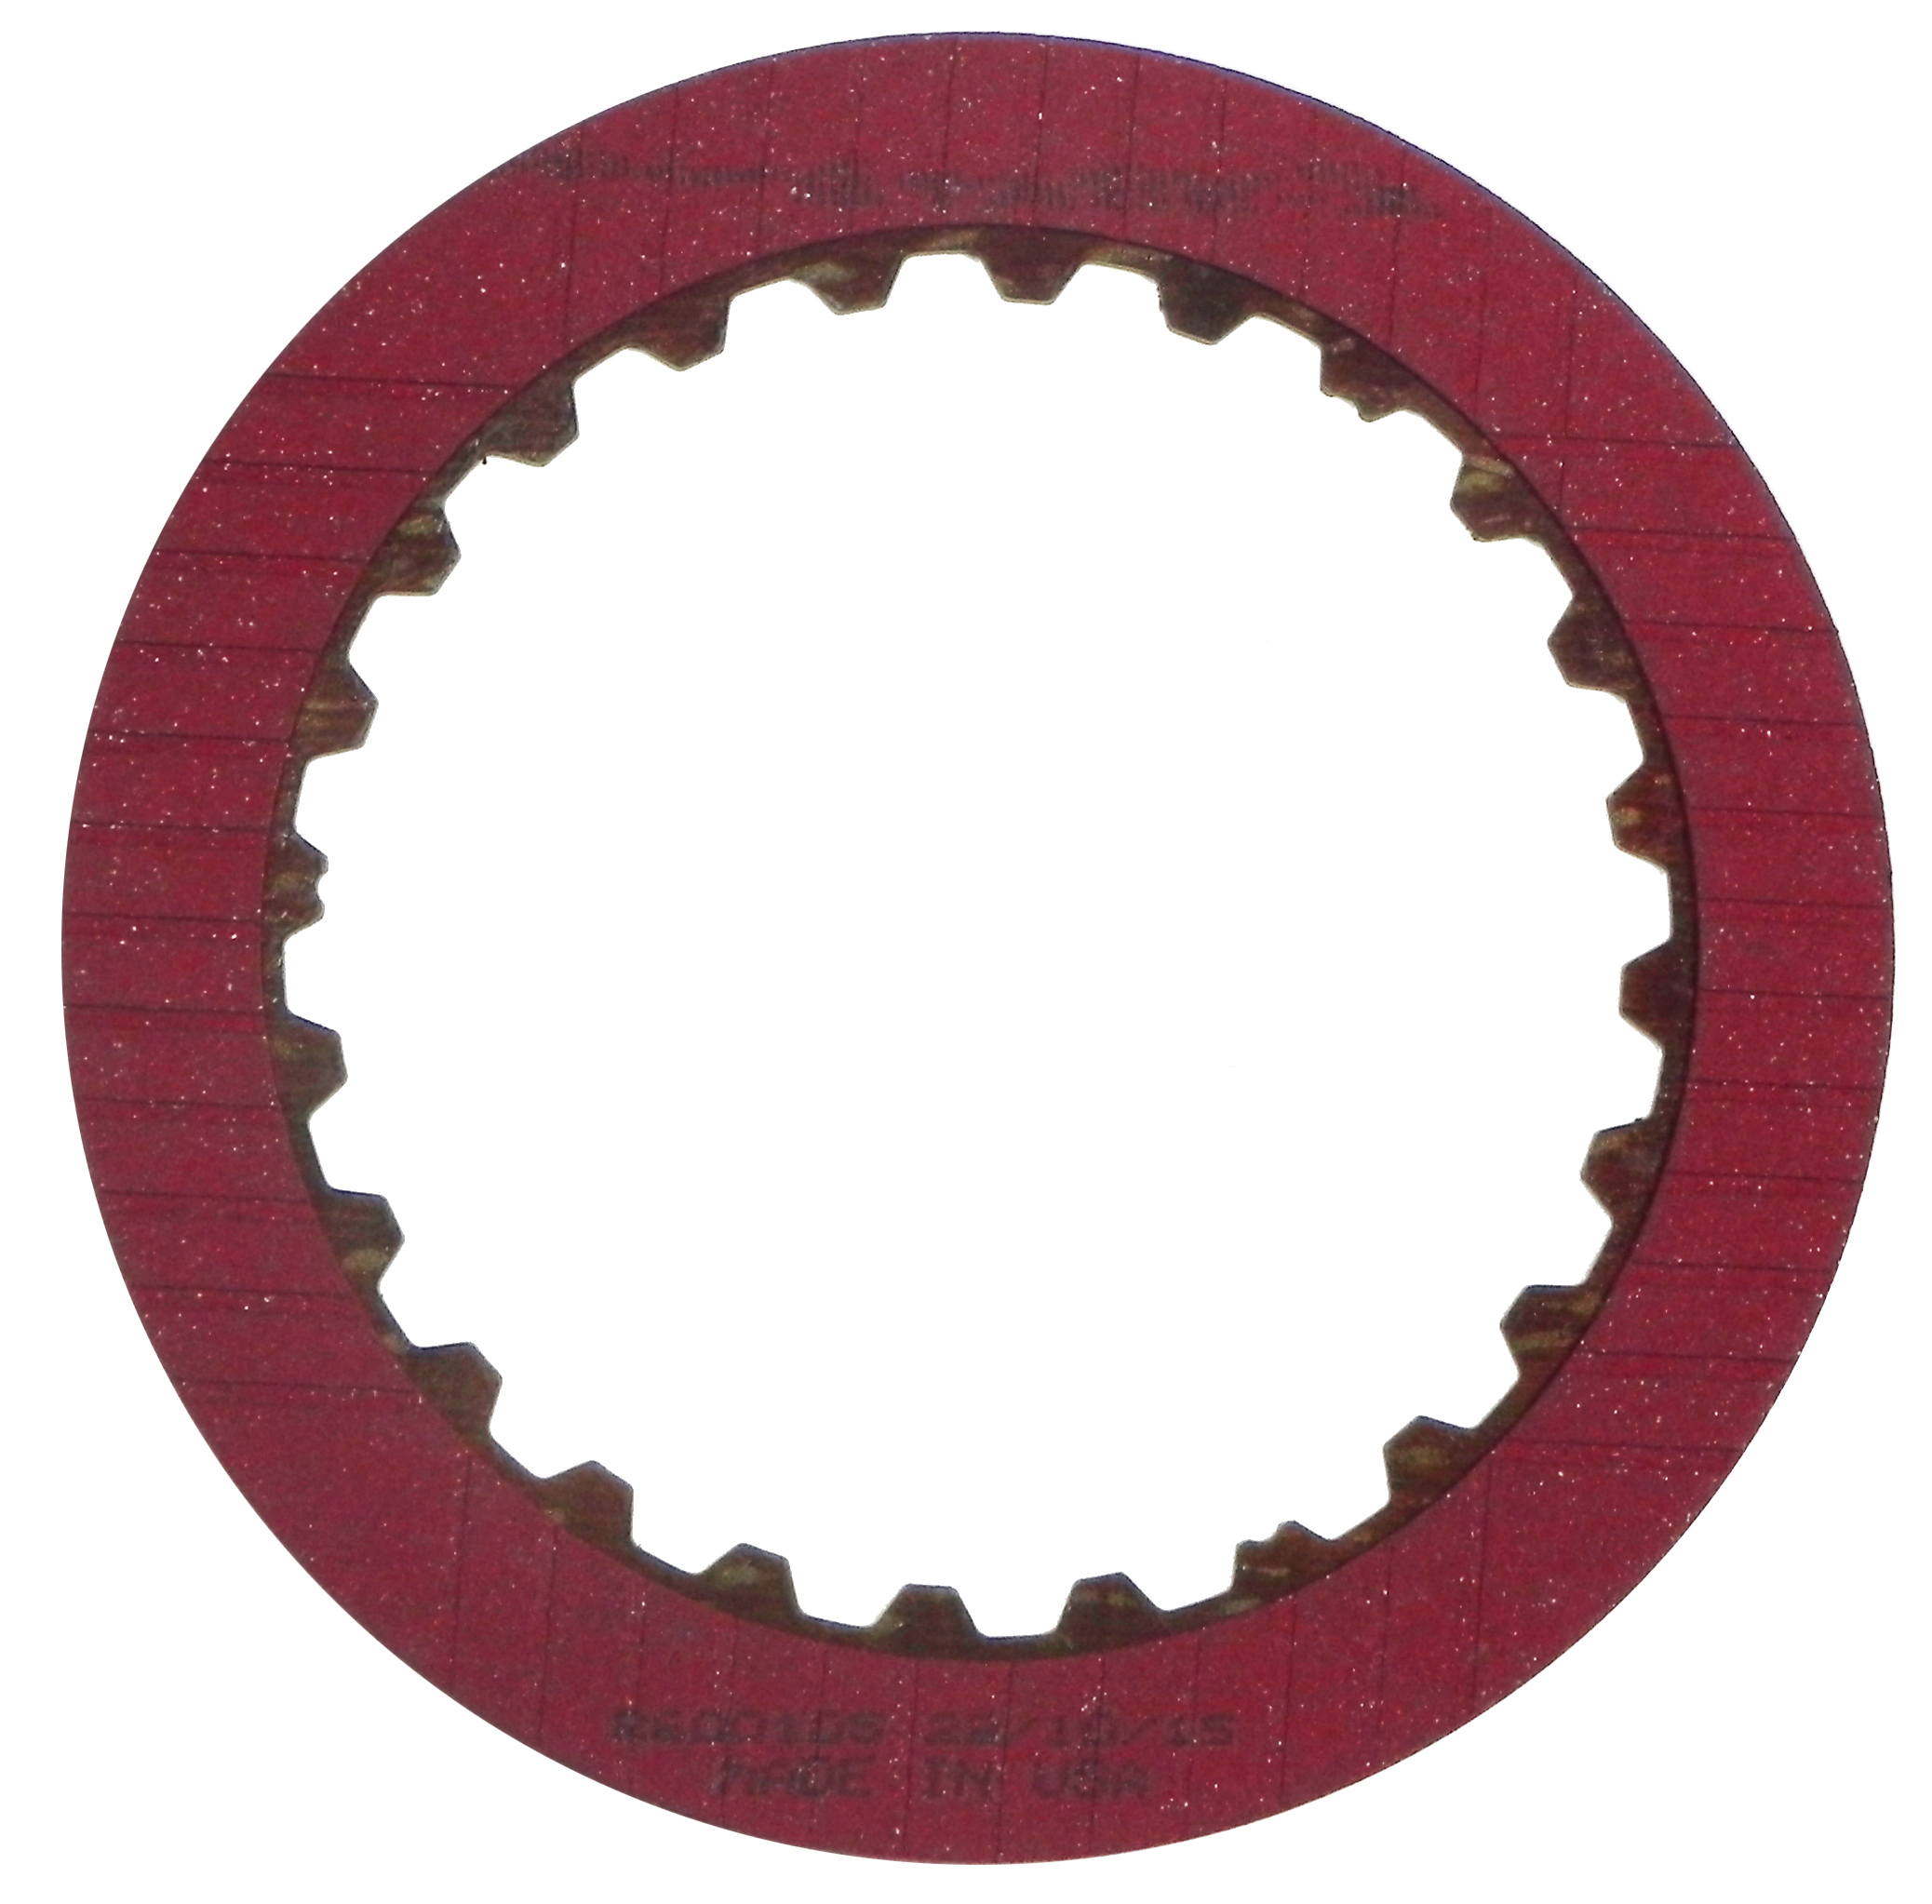 R600105 | 1997-ON Friction Clutch Plate Stage-1™ K3 Clutch Single Sided, ID Spline Stage-1™